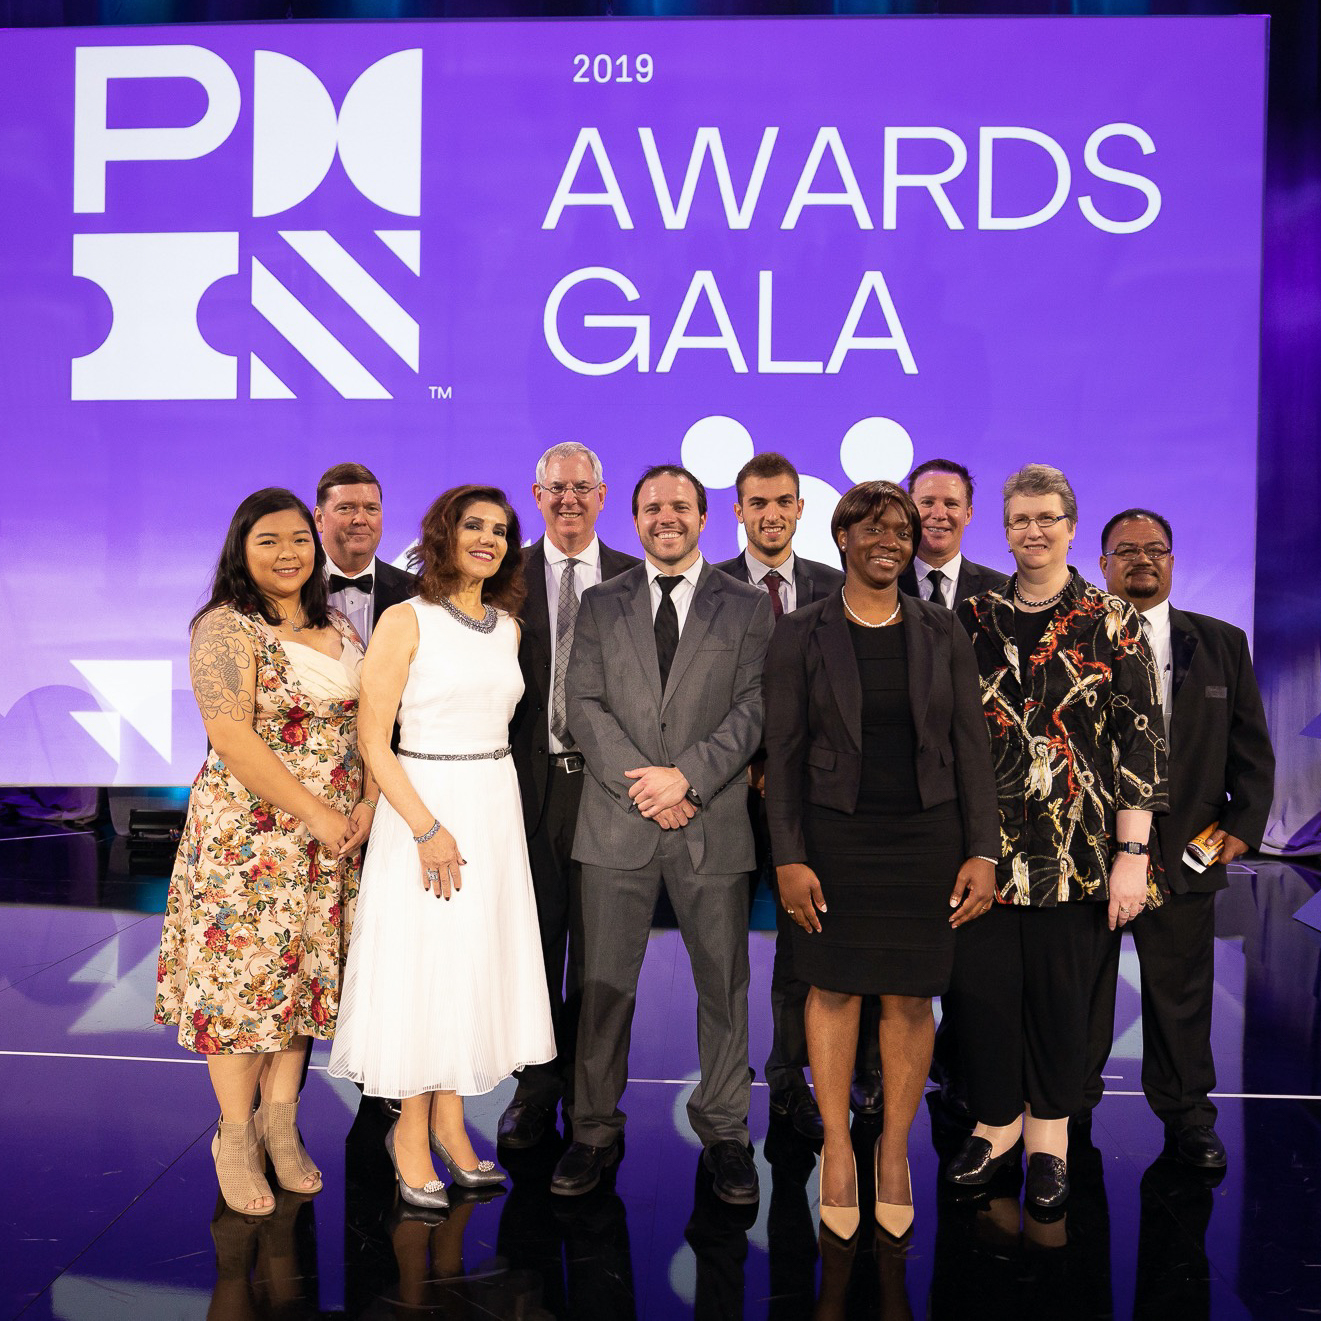 PMI award recipients on stage at gala event